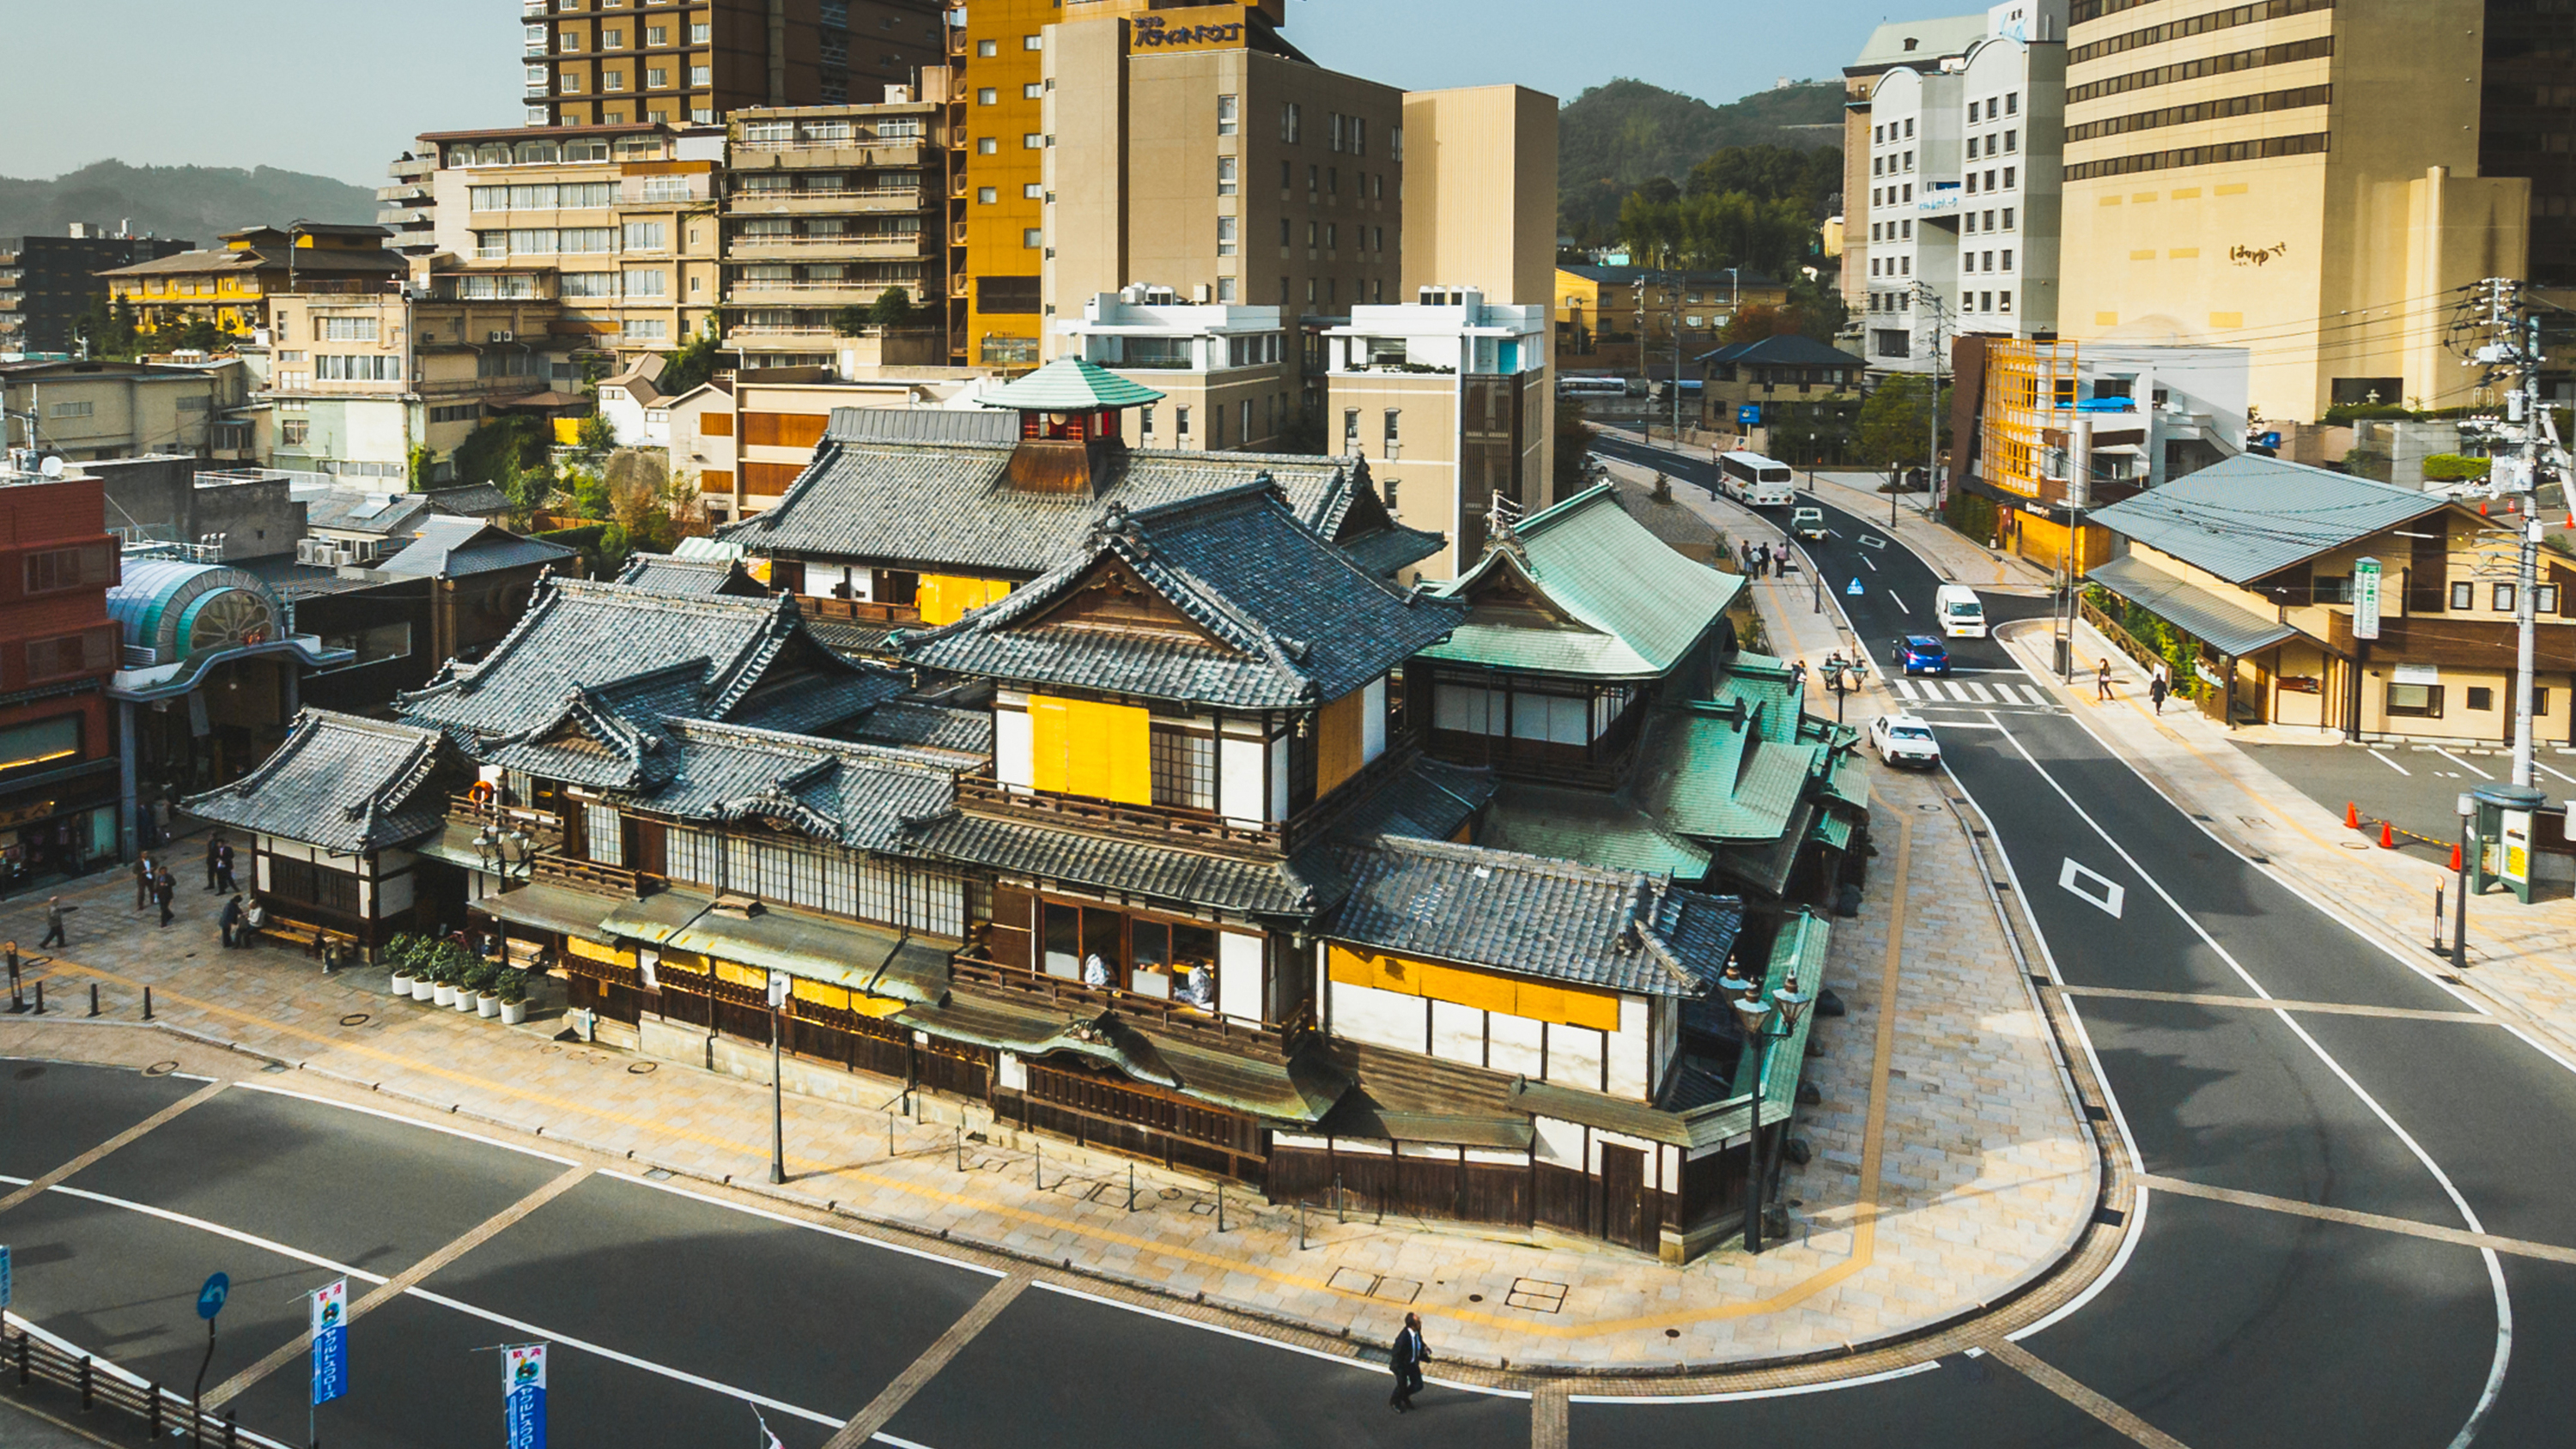 Dogo Onsen, Spirited Away